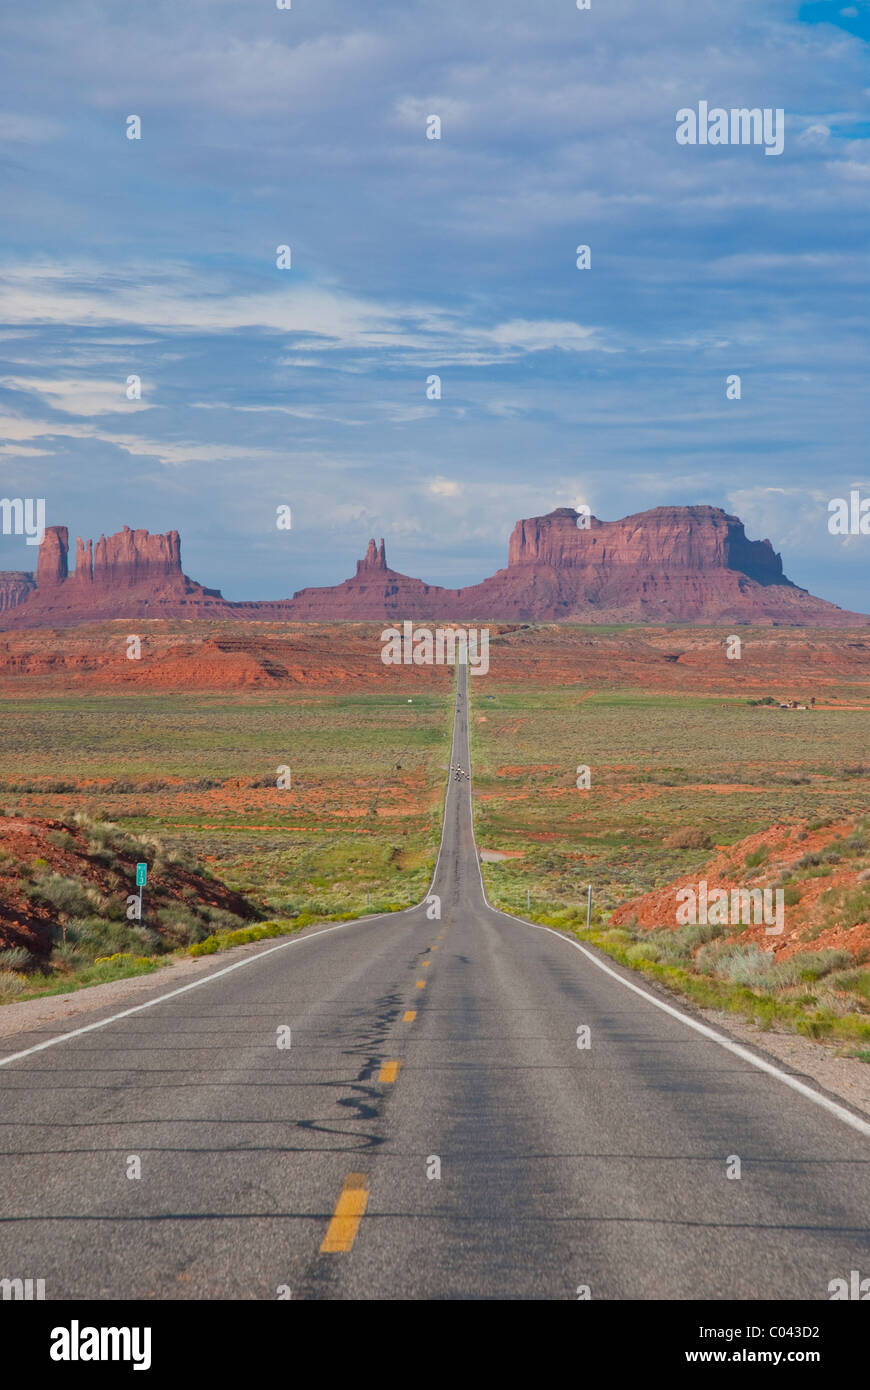 World famous Monument Valley - Stock Image